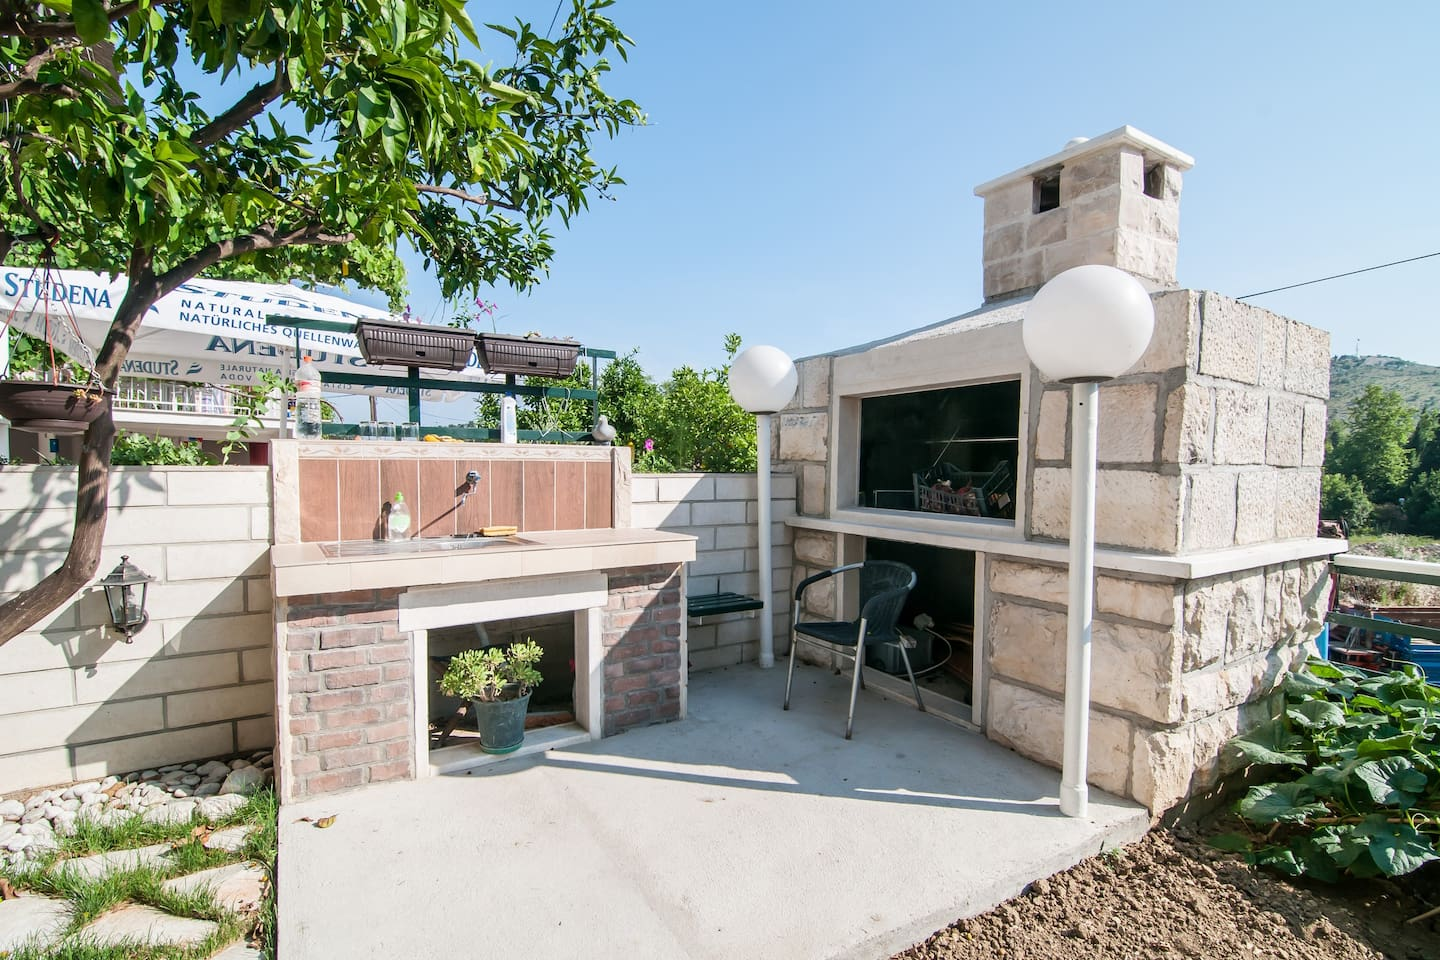 Outdoor grill with a small garden next to it is located on the ground floor